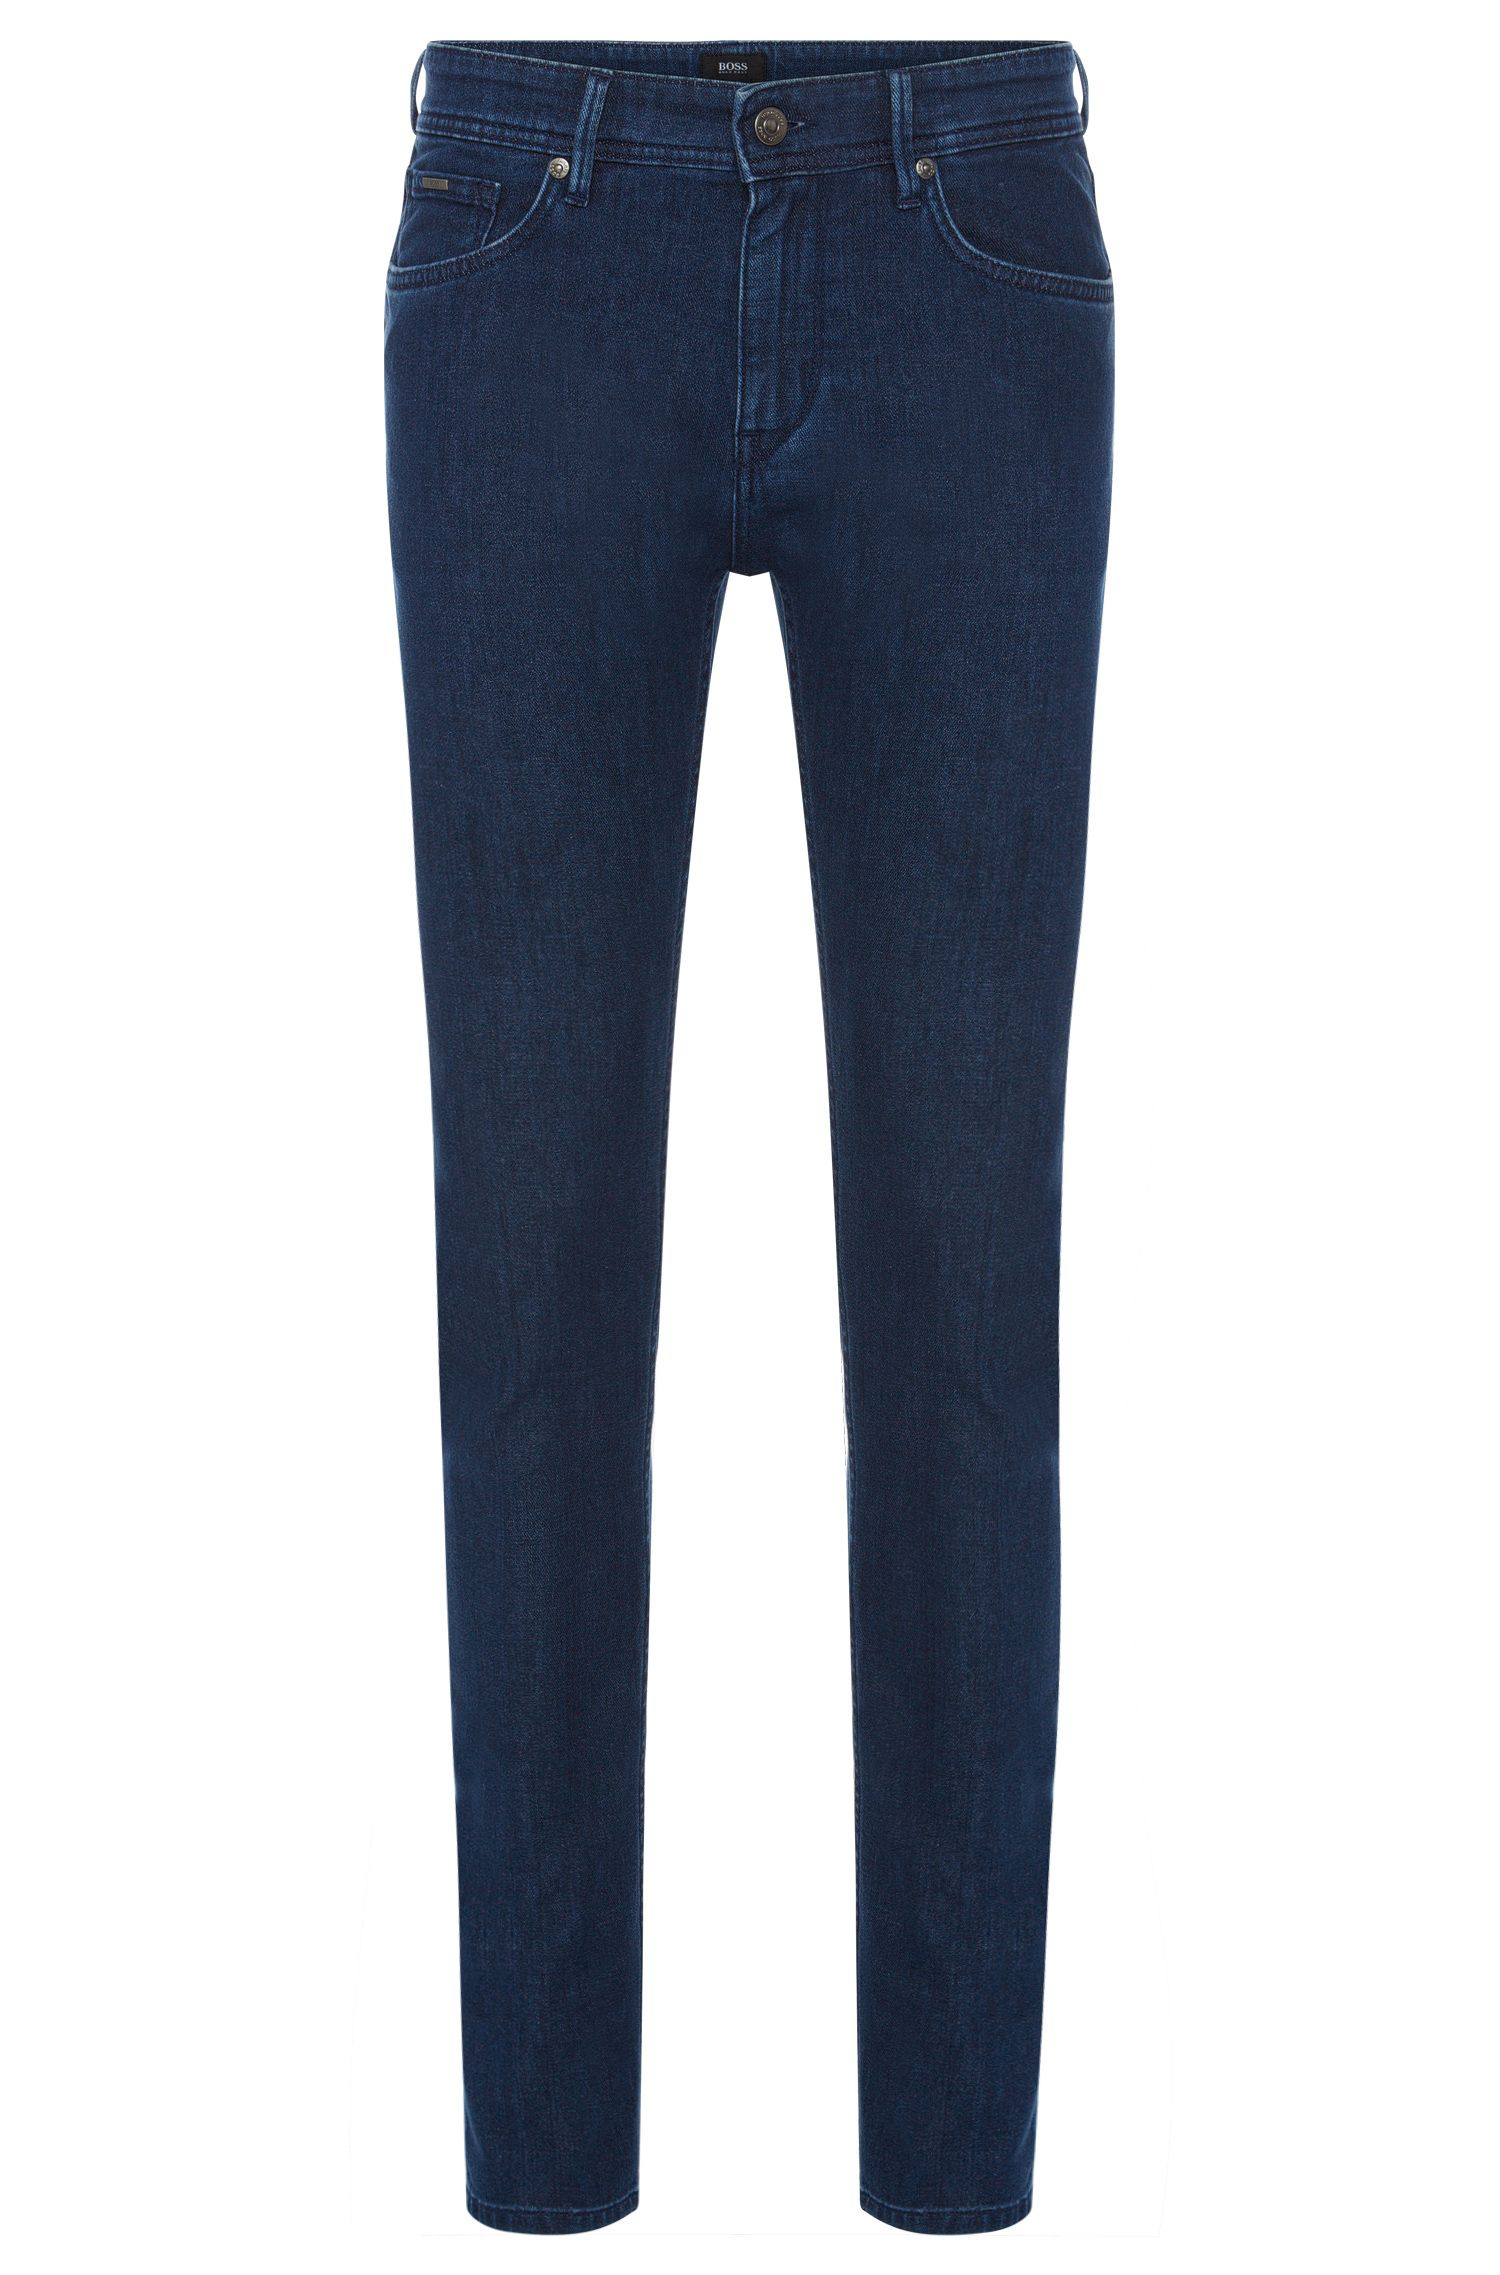 Slim-Fit Jeans aus Stretch-Baumwolle in Rinsed-Optik: 'Charleston3'